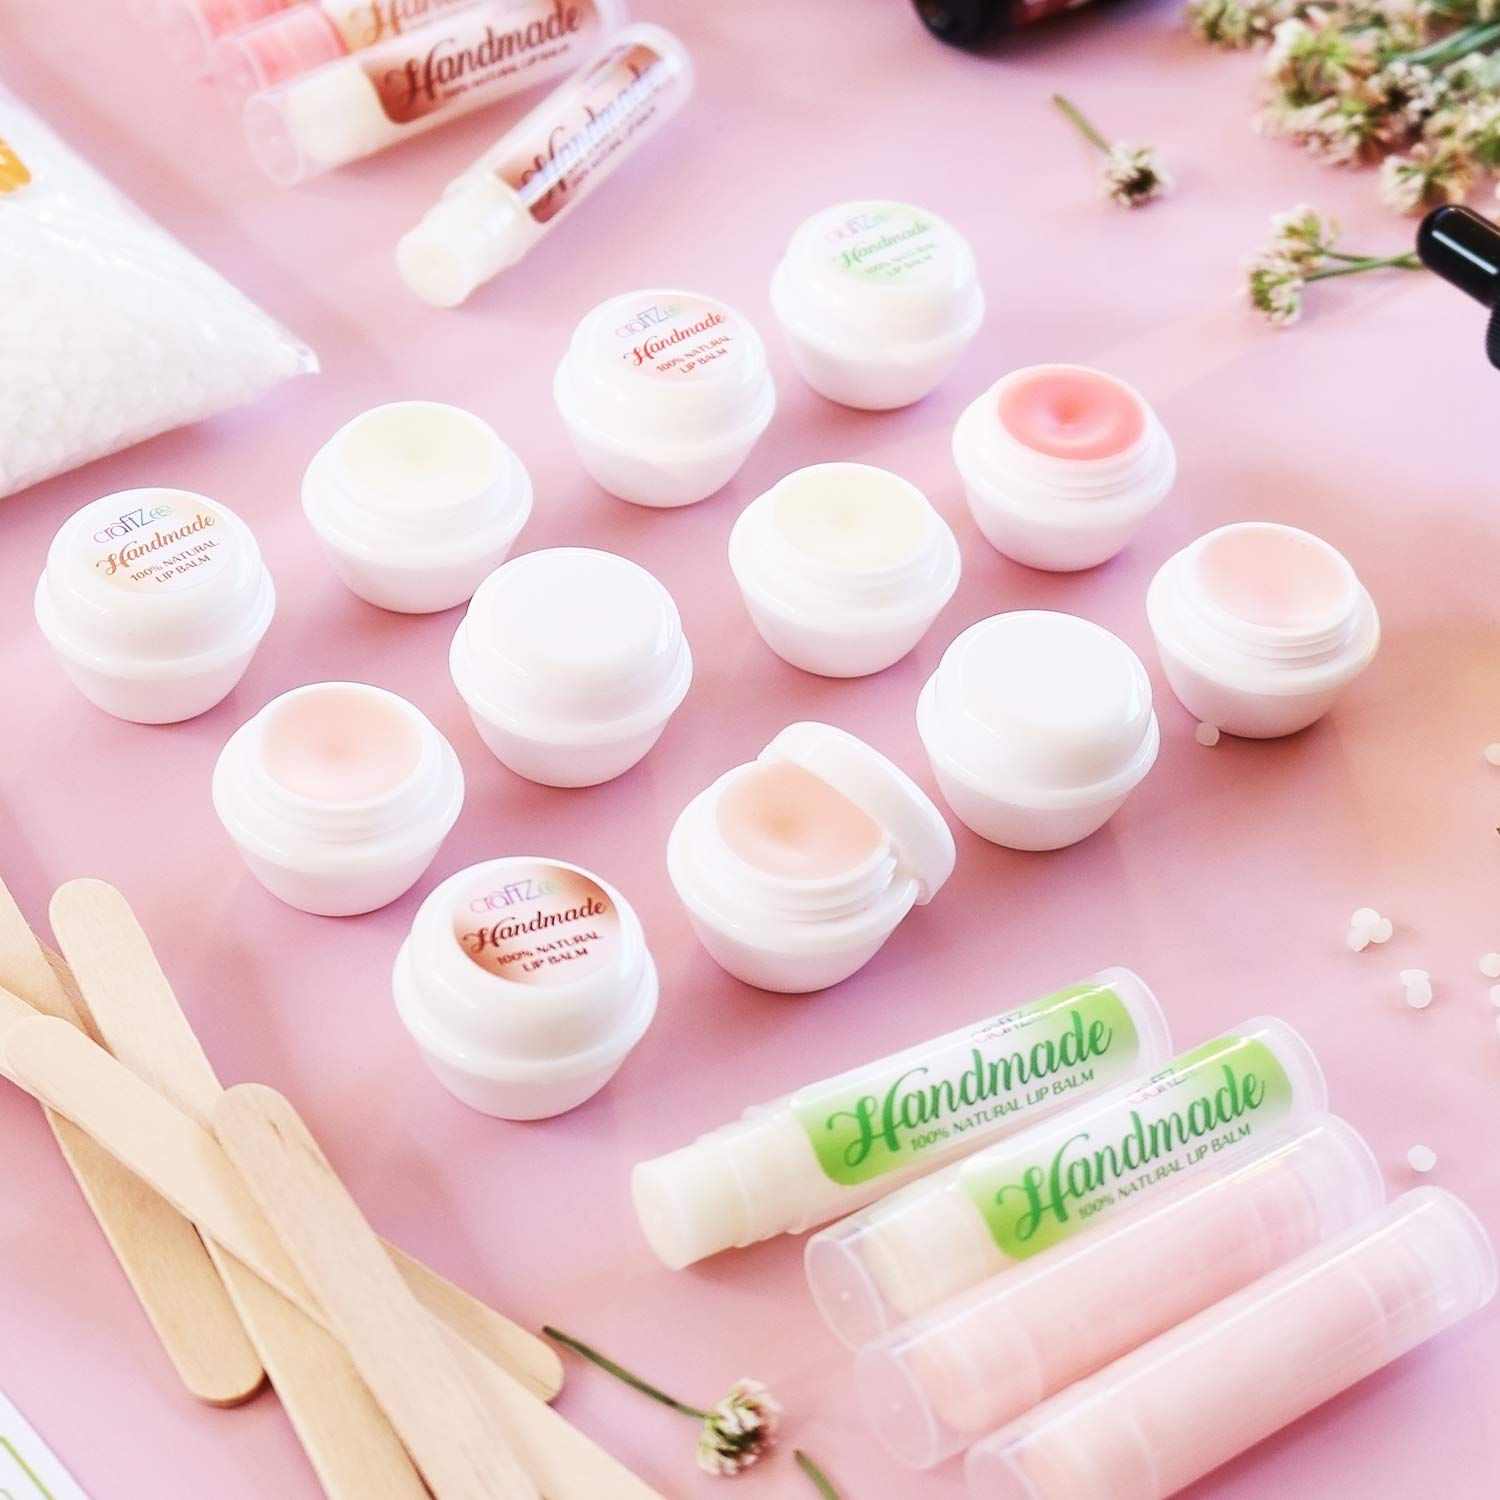 Ultimate Lip Balm Making Kit 20  Piece Set   All Natural Formula With  Beeswax, Shea Butter, Almond Oil+ 20 Rich Flavors to Create 20 Lush Lip  Balms   ...